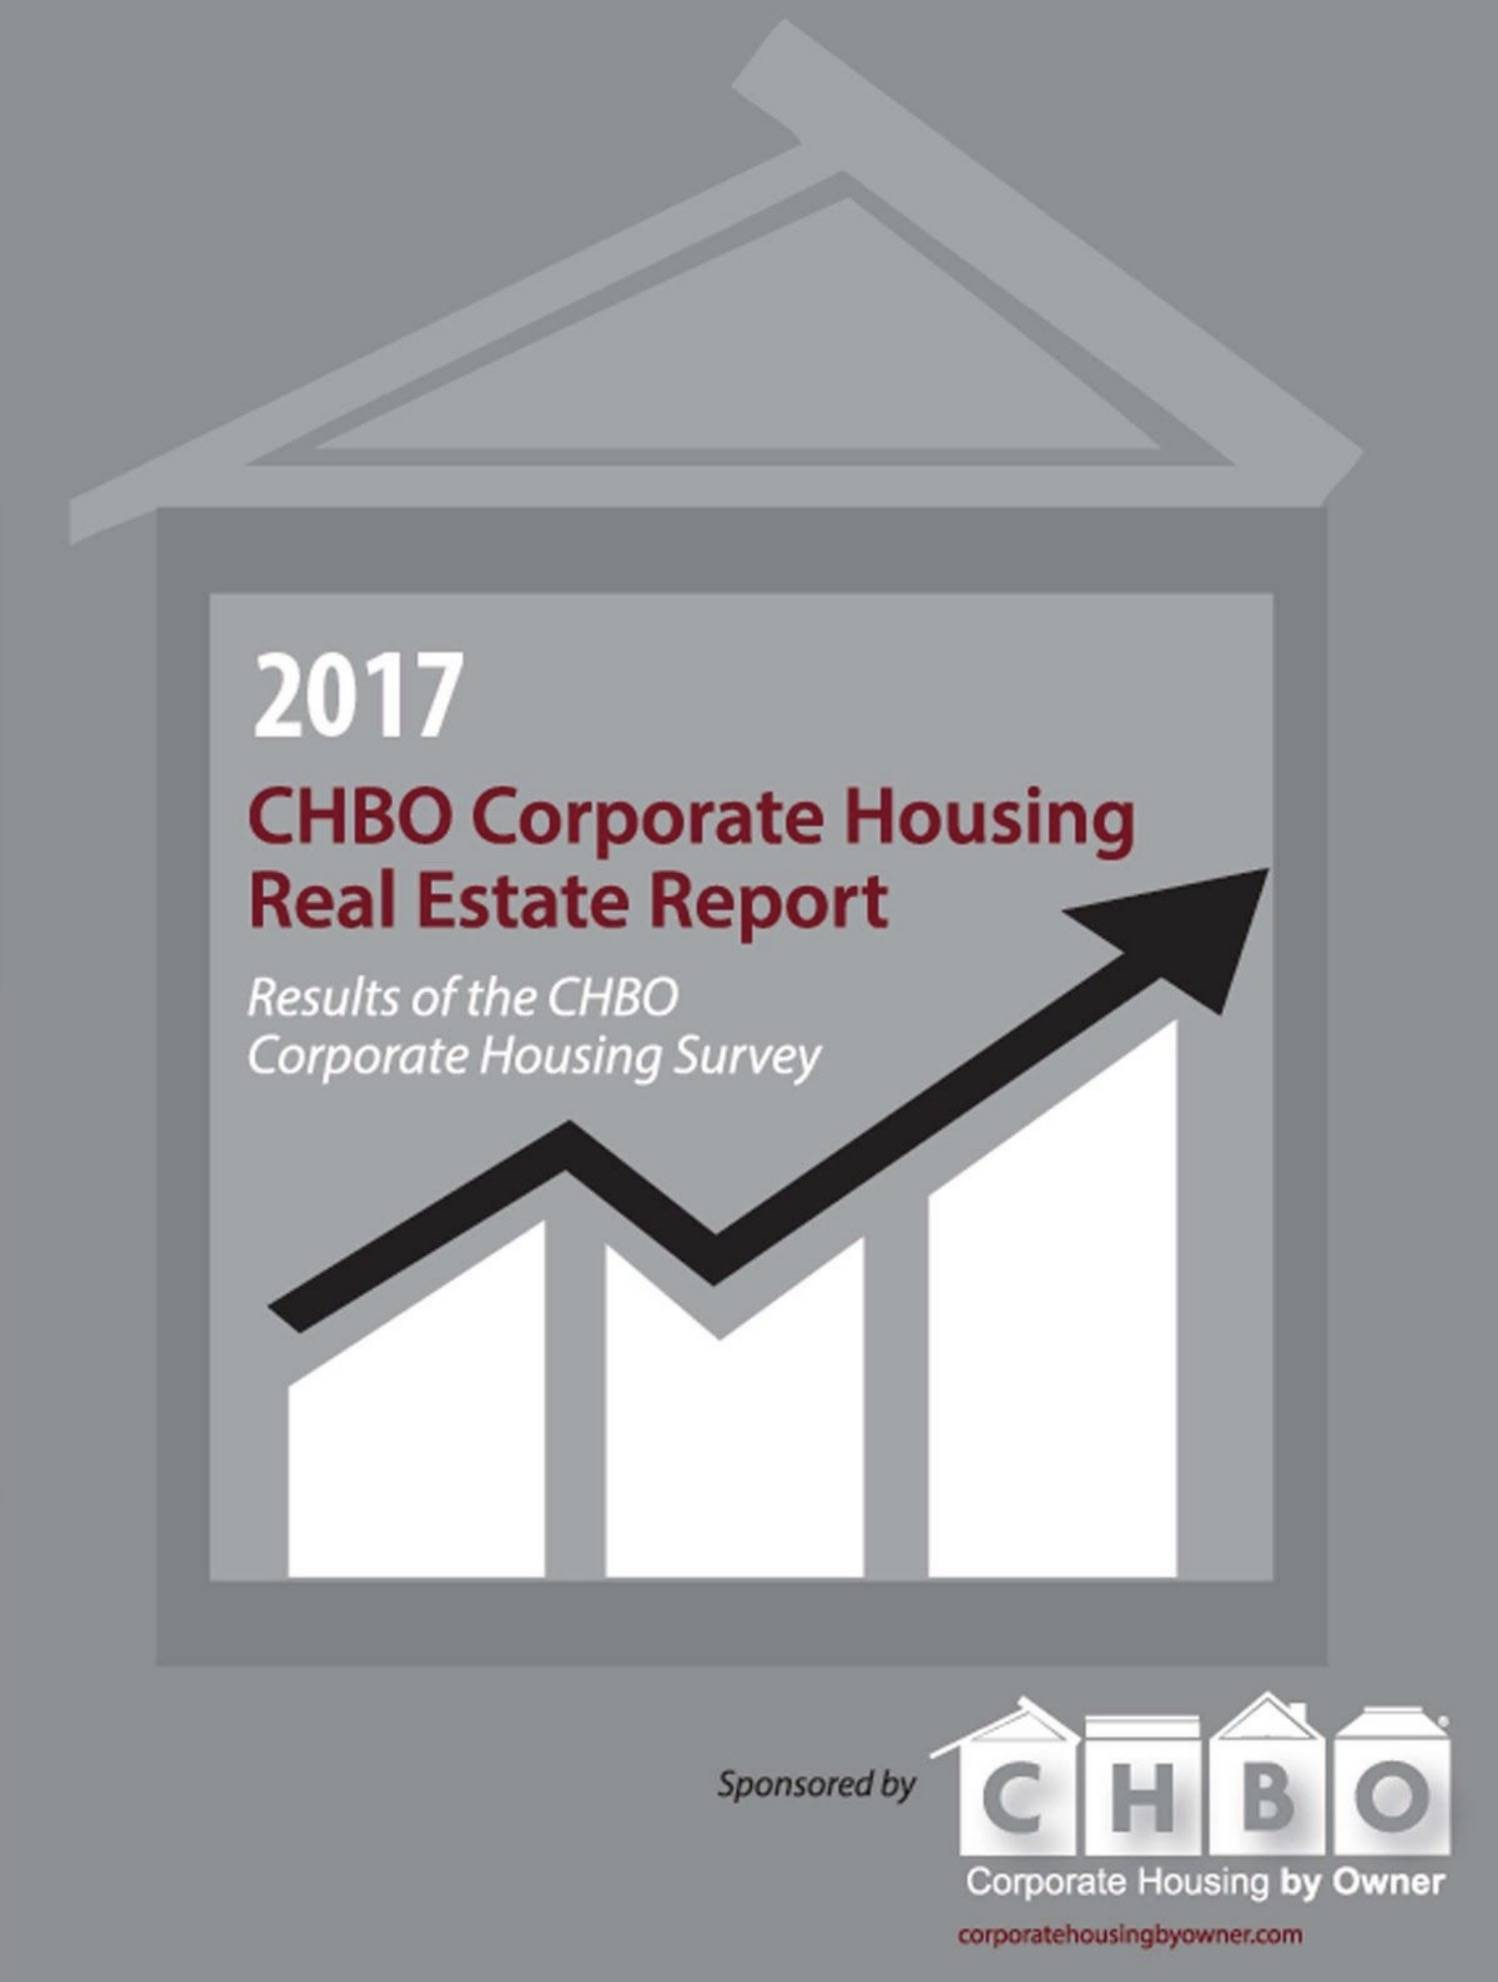 Corporate Housing By Owner Has Completed Its 9th Annual Corporate Housing Real Estate Survey